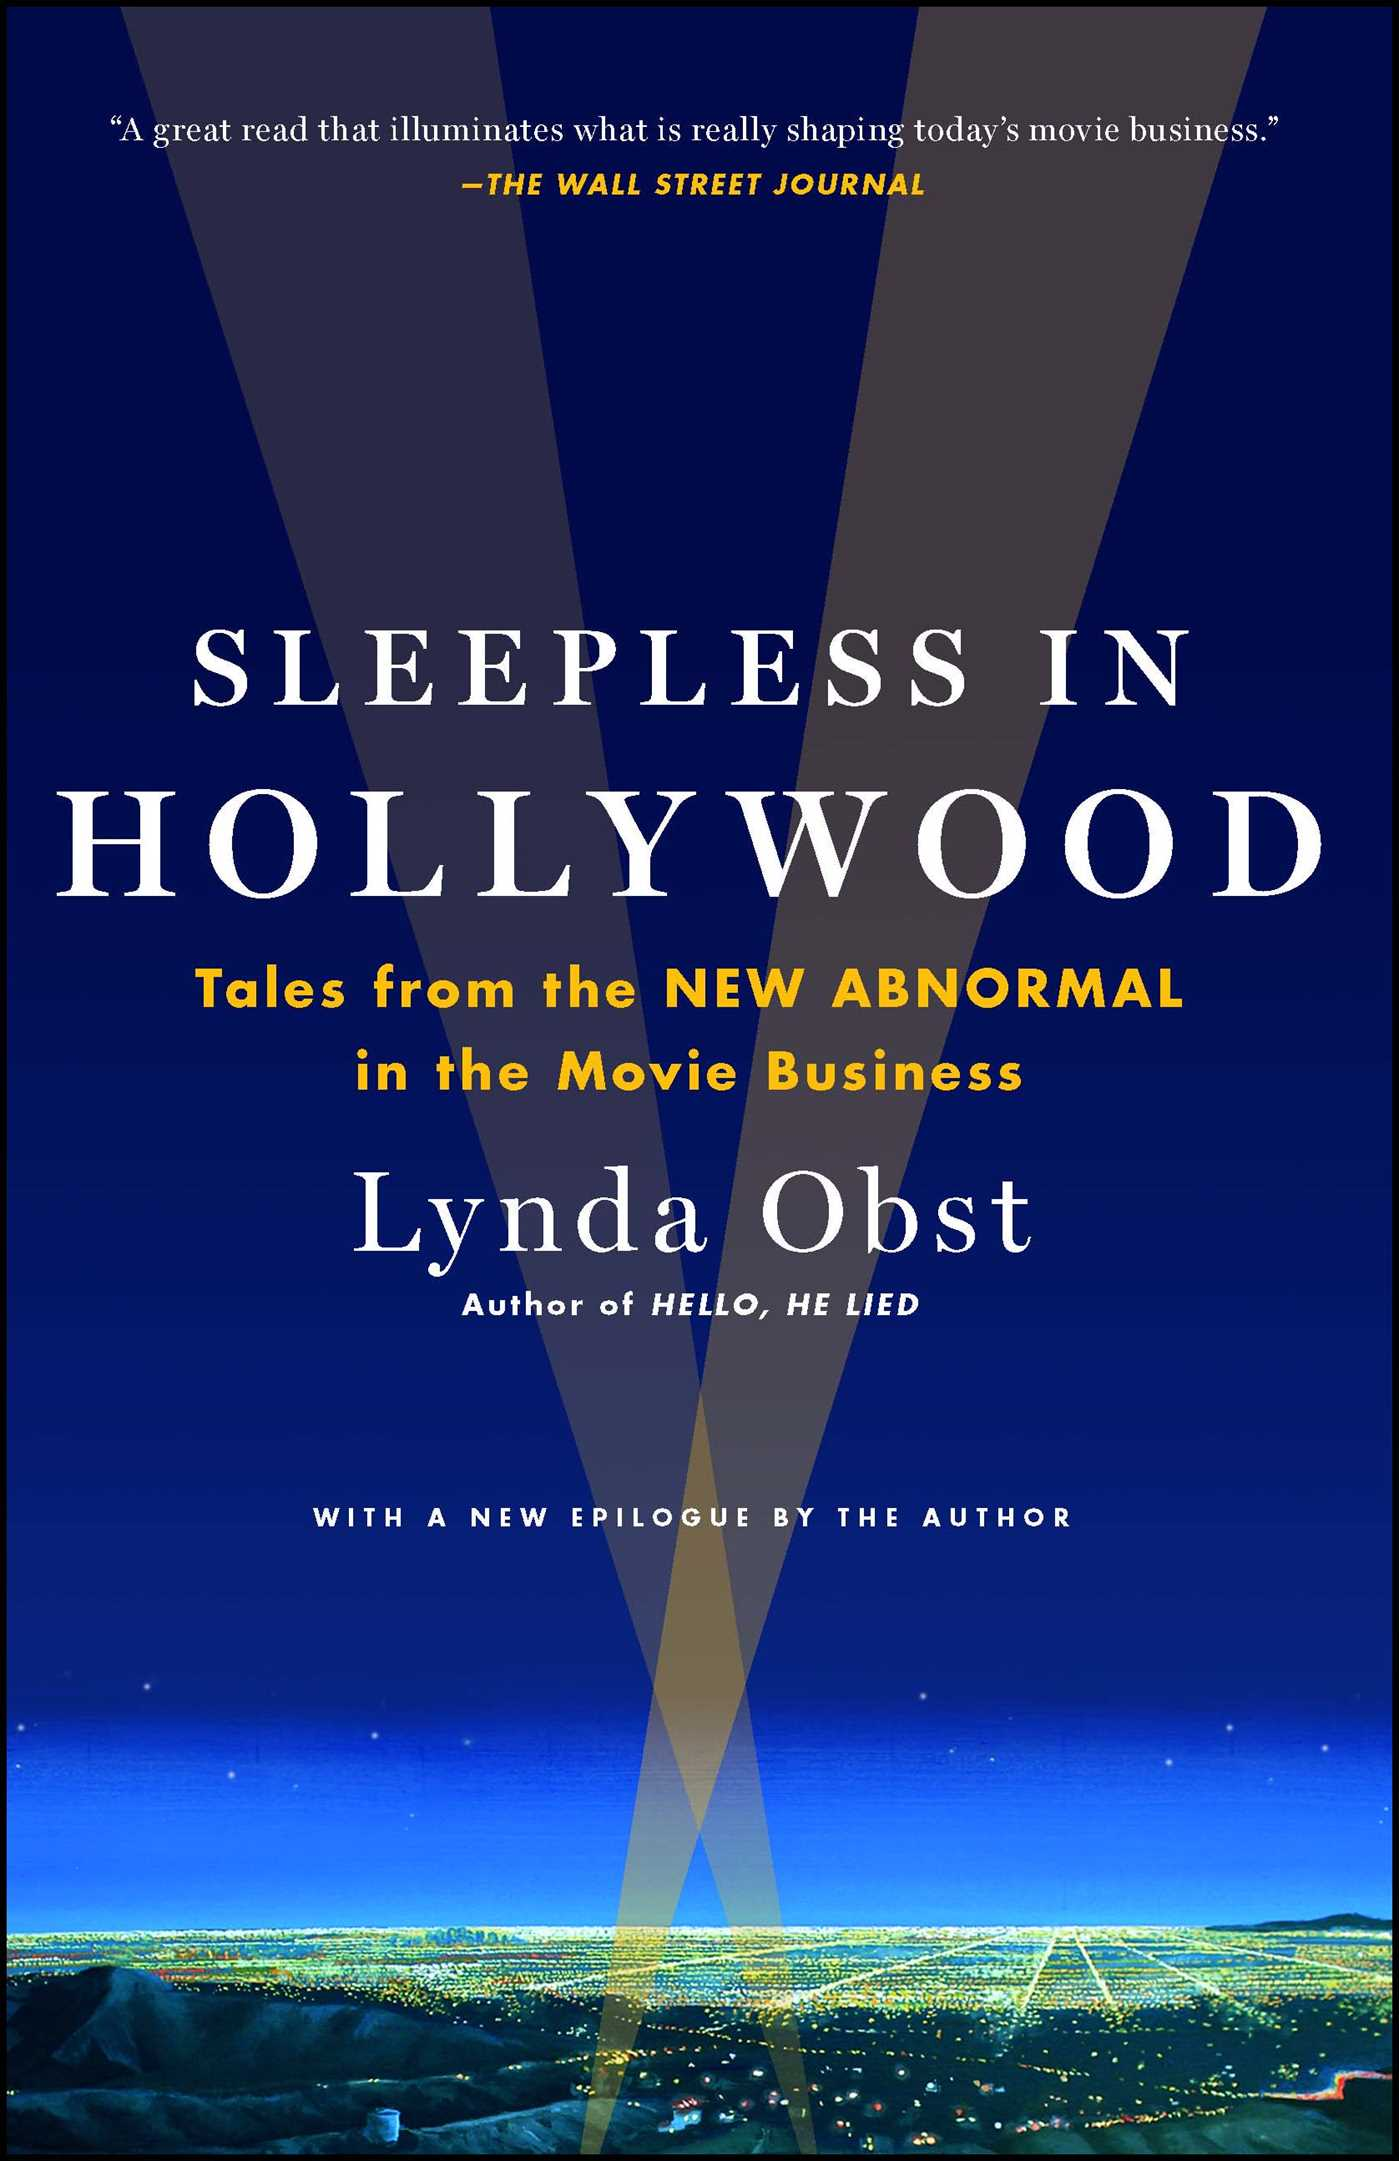 Sleepless-in-hollywood-9781476727752_hr